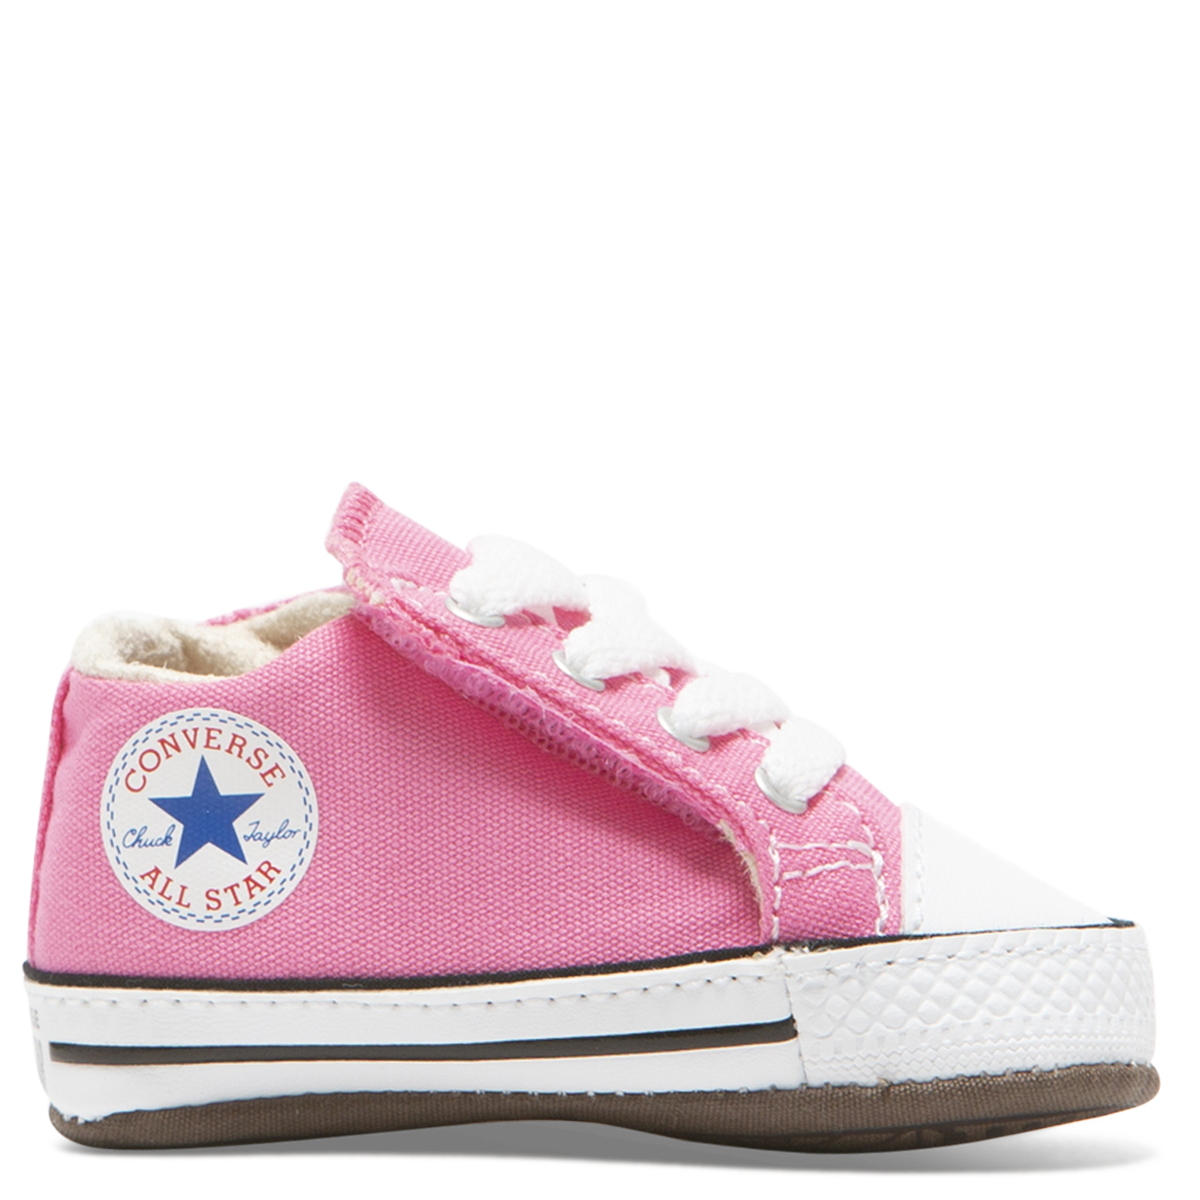 Converse Chuck Taylor All Star Cribster Canvas Colour Mid PinkNatural IvoryWhite